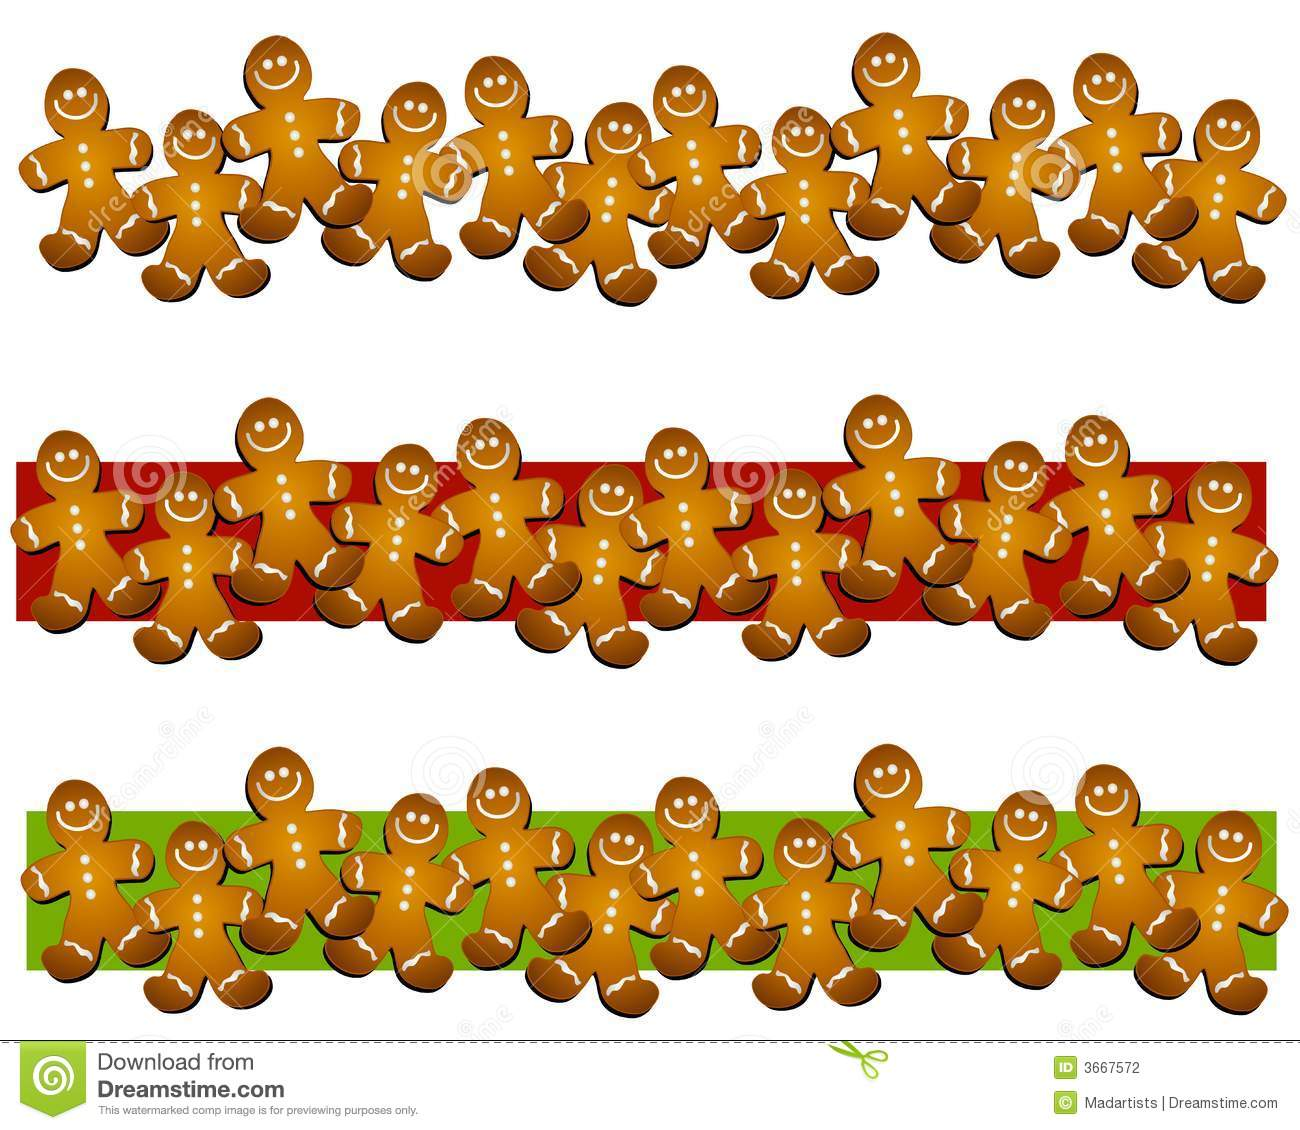 Gingerbread man cookie borders stock illustration illustration gingerbread man cookie borders publicscrutiny Images